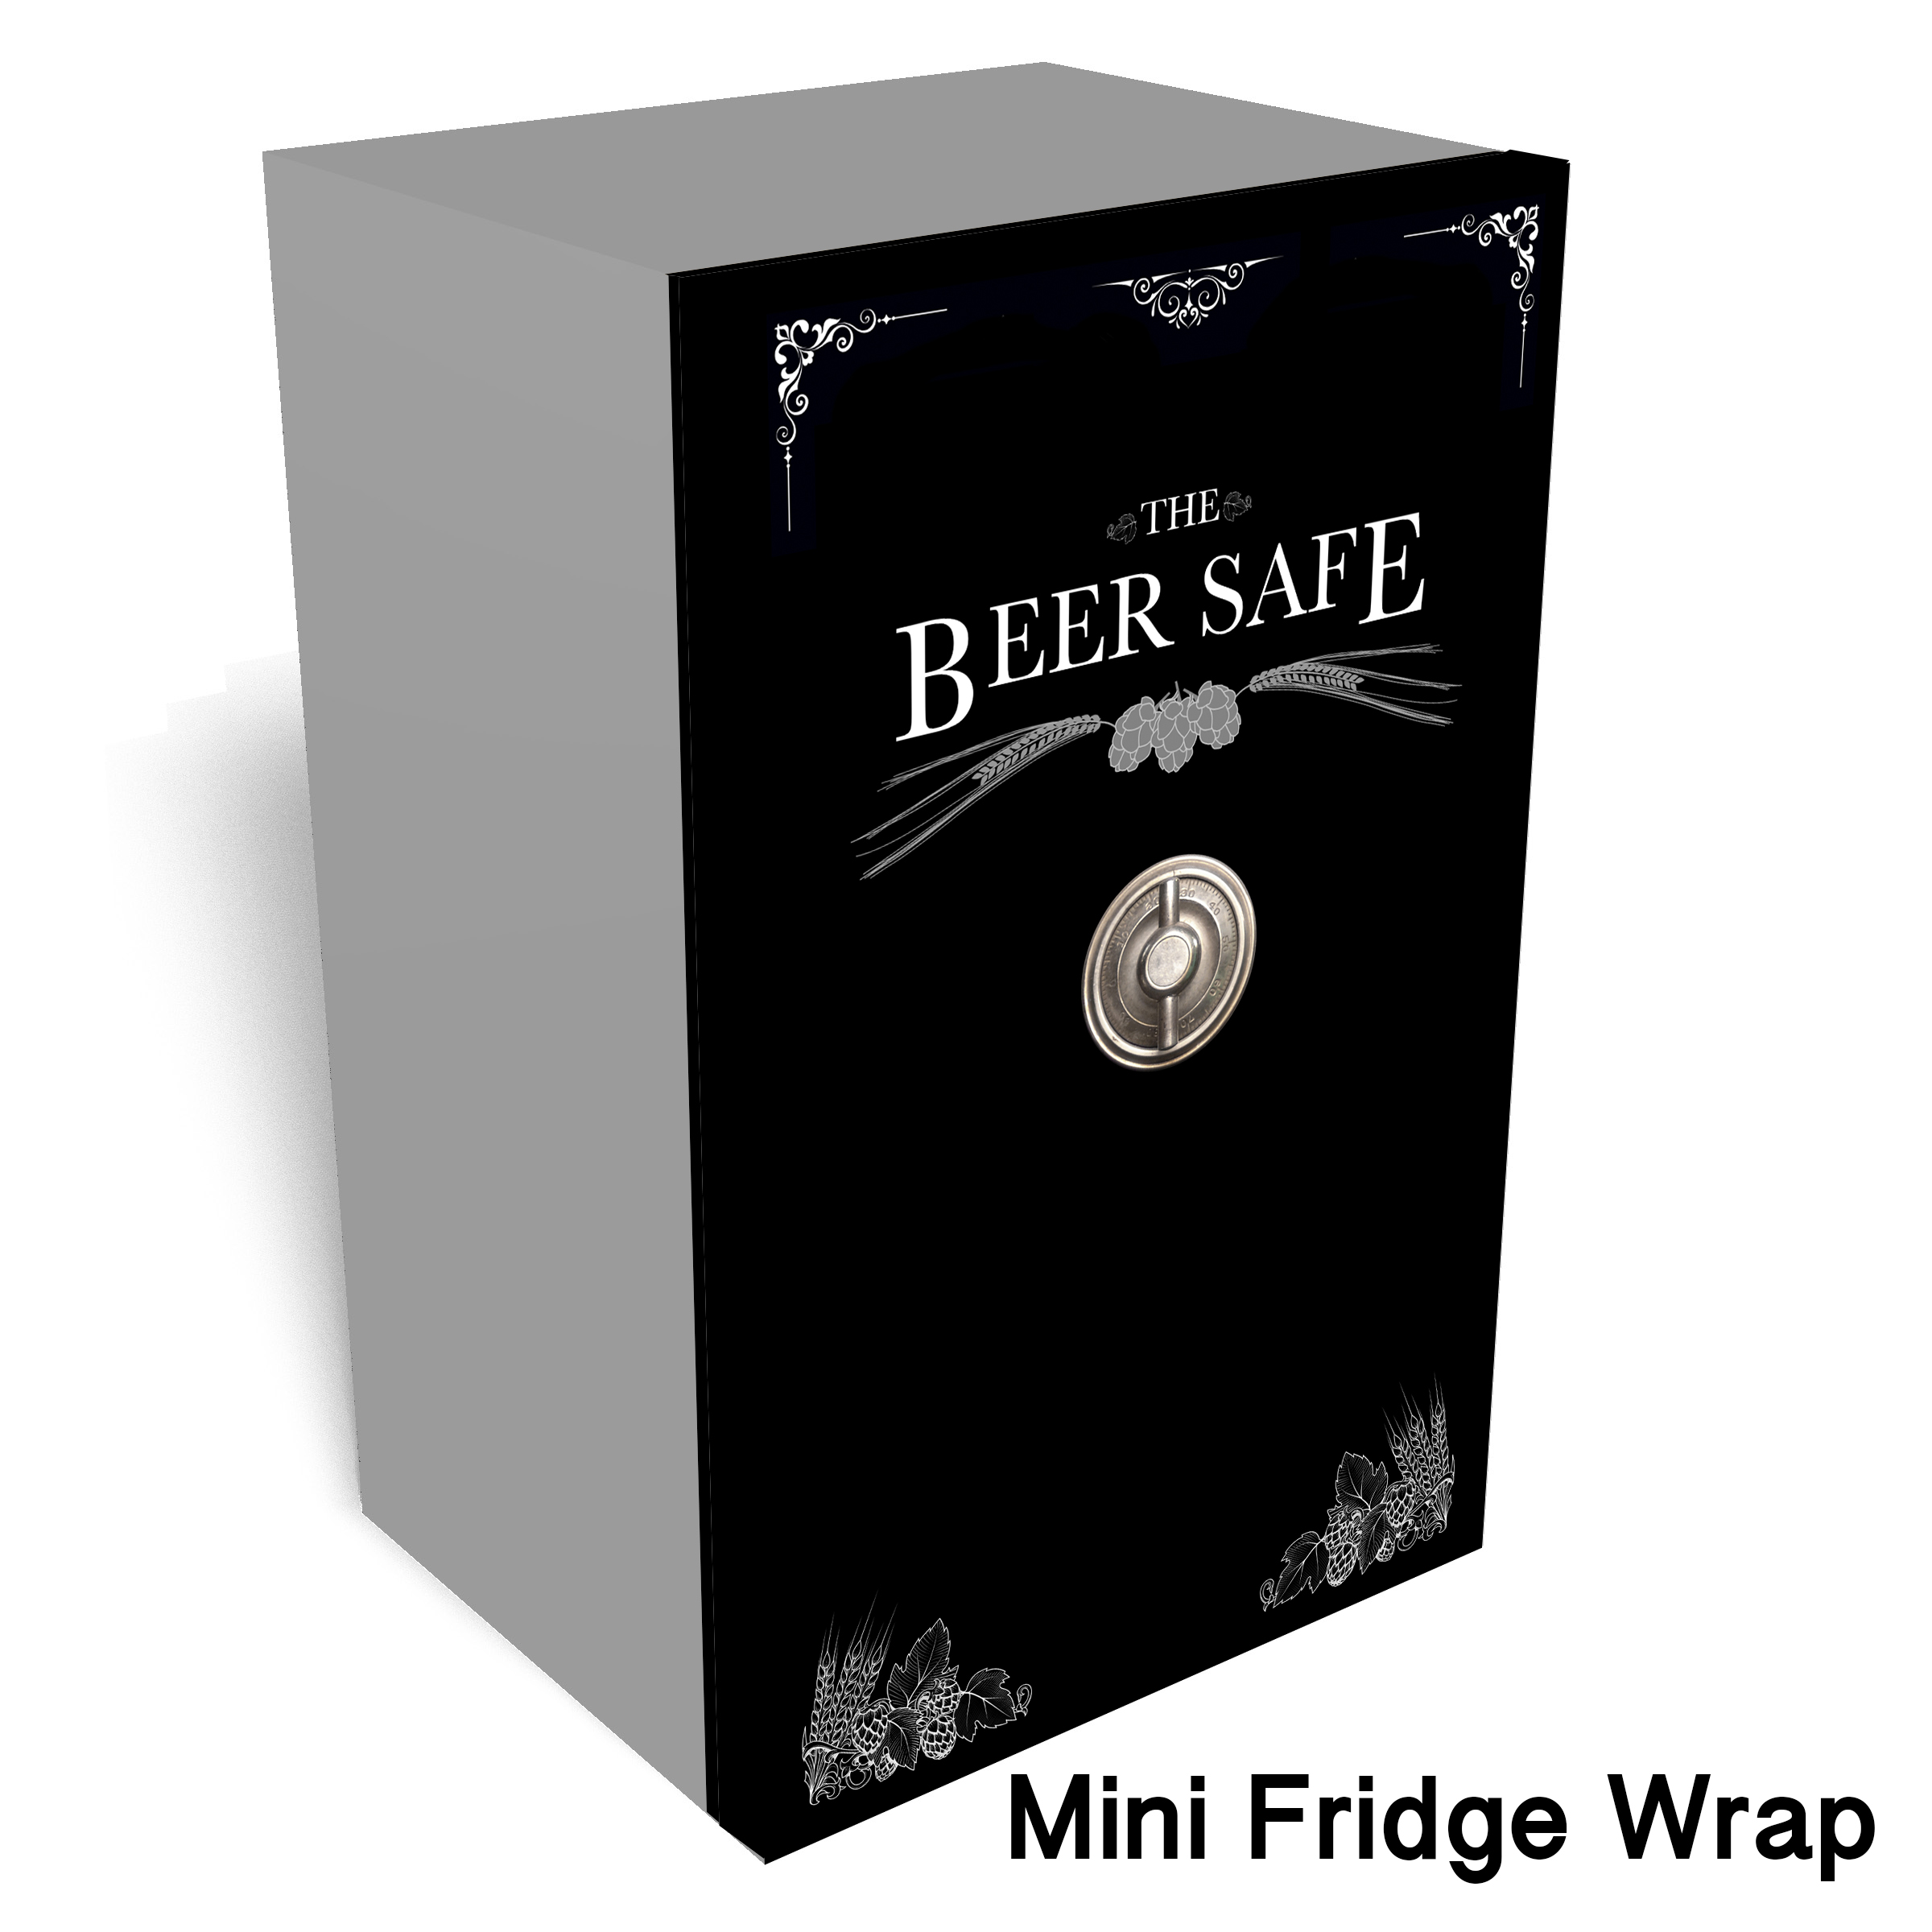 Beer Safe Mini Fridge Wrap